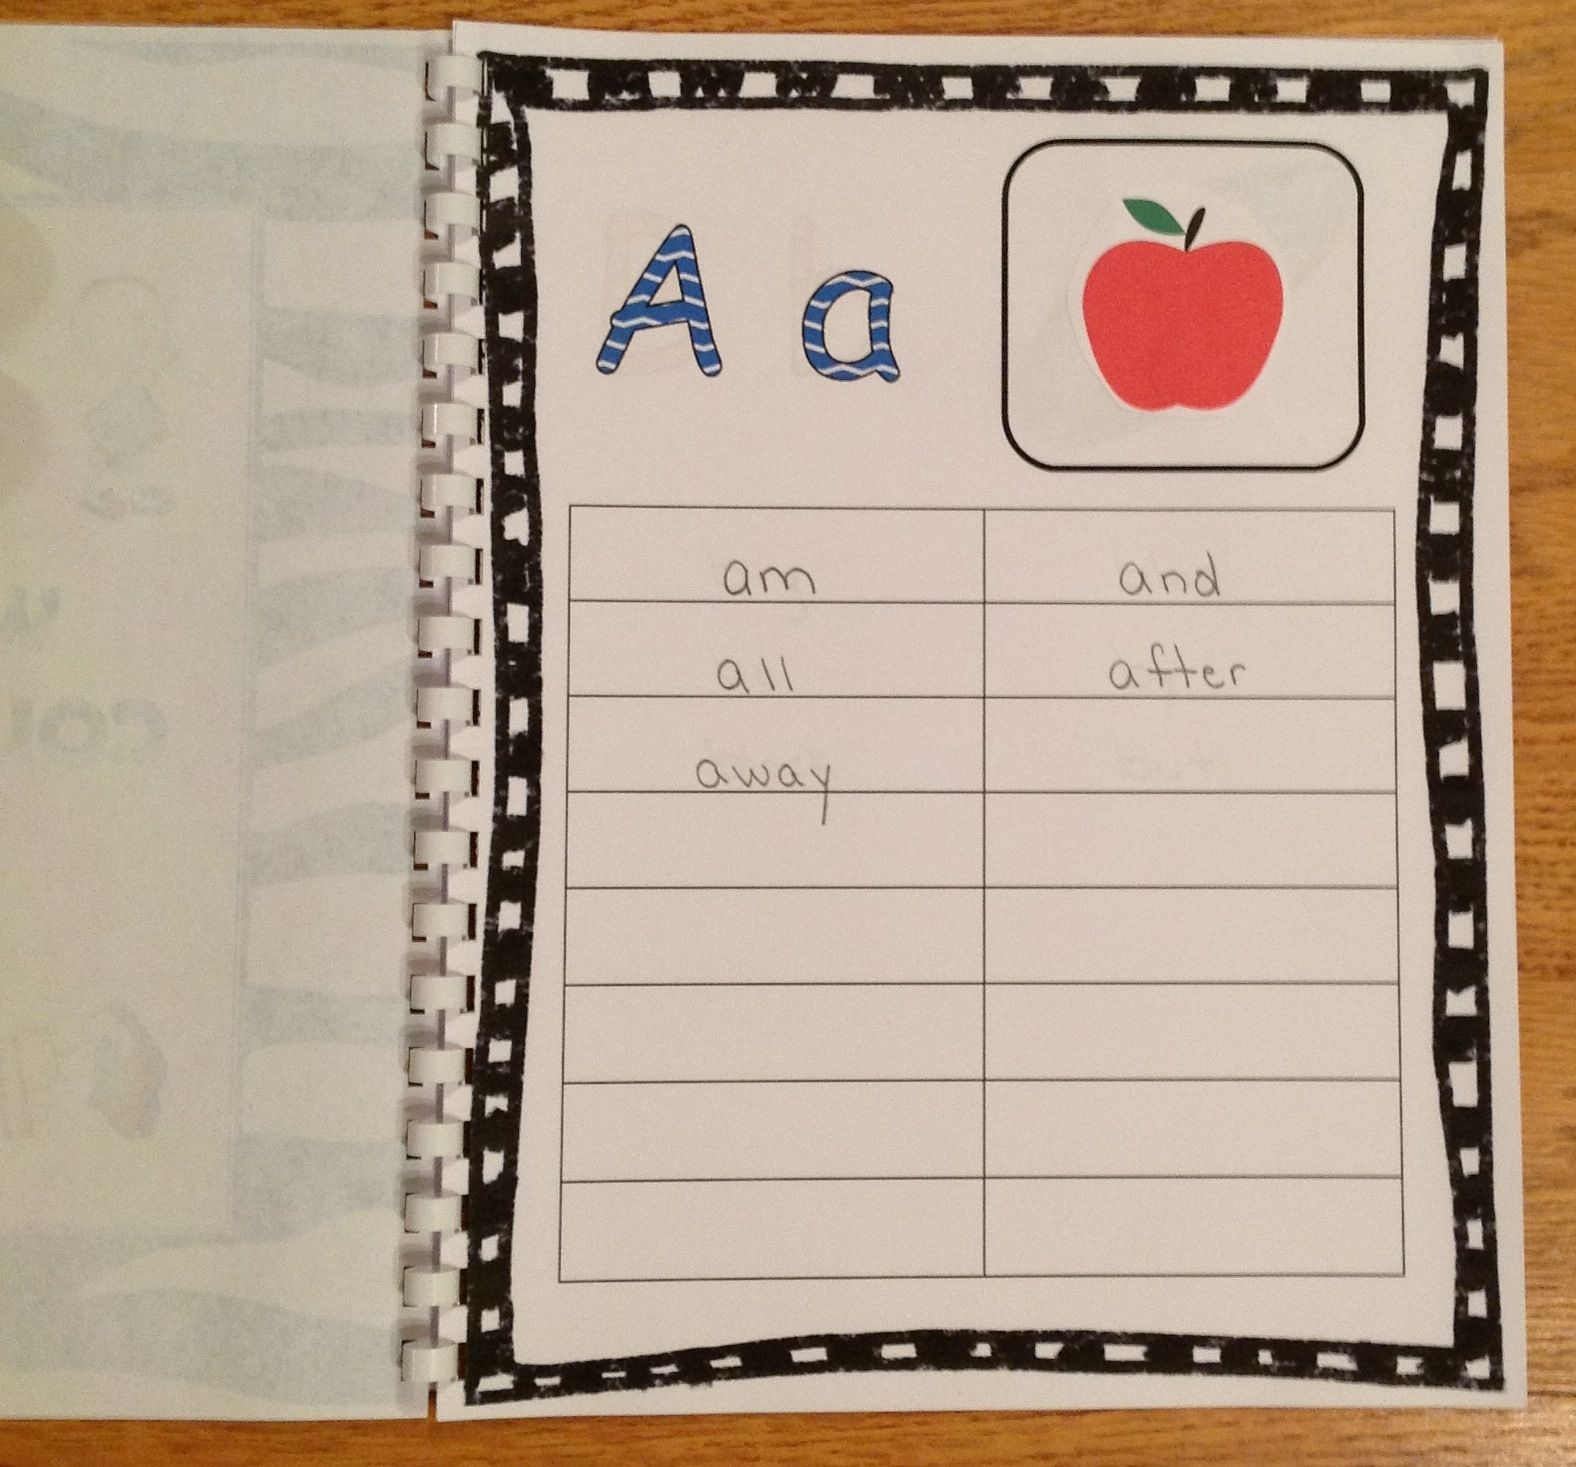 Need A Way For Kids To Organize Their Sight Words This Is A Great Personal Dictionary For